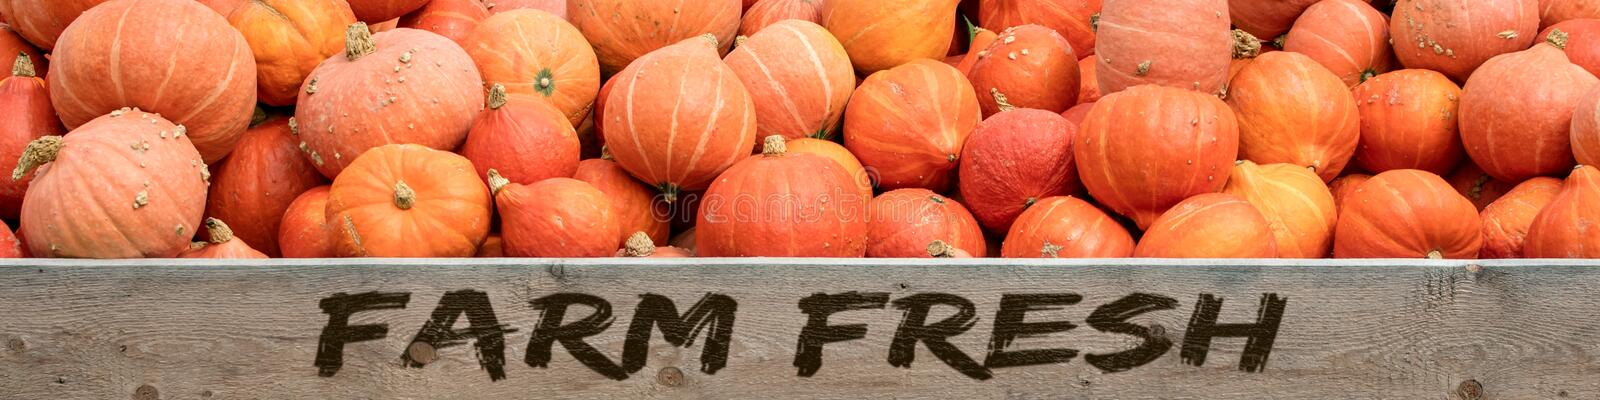 Header, red kuri squash with text Farm fresh stock photography